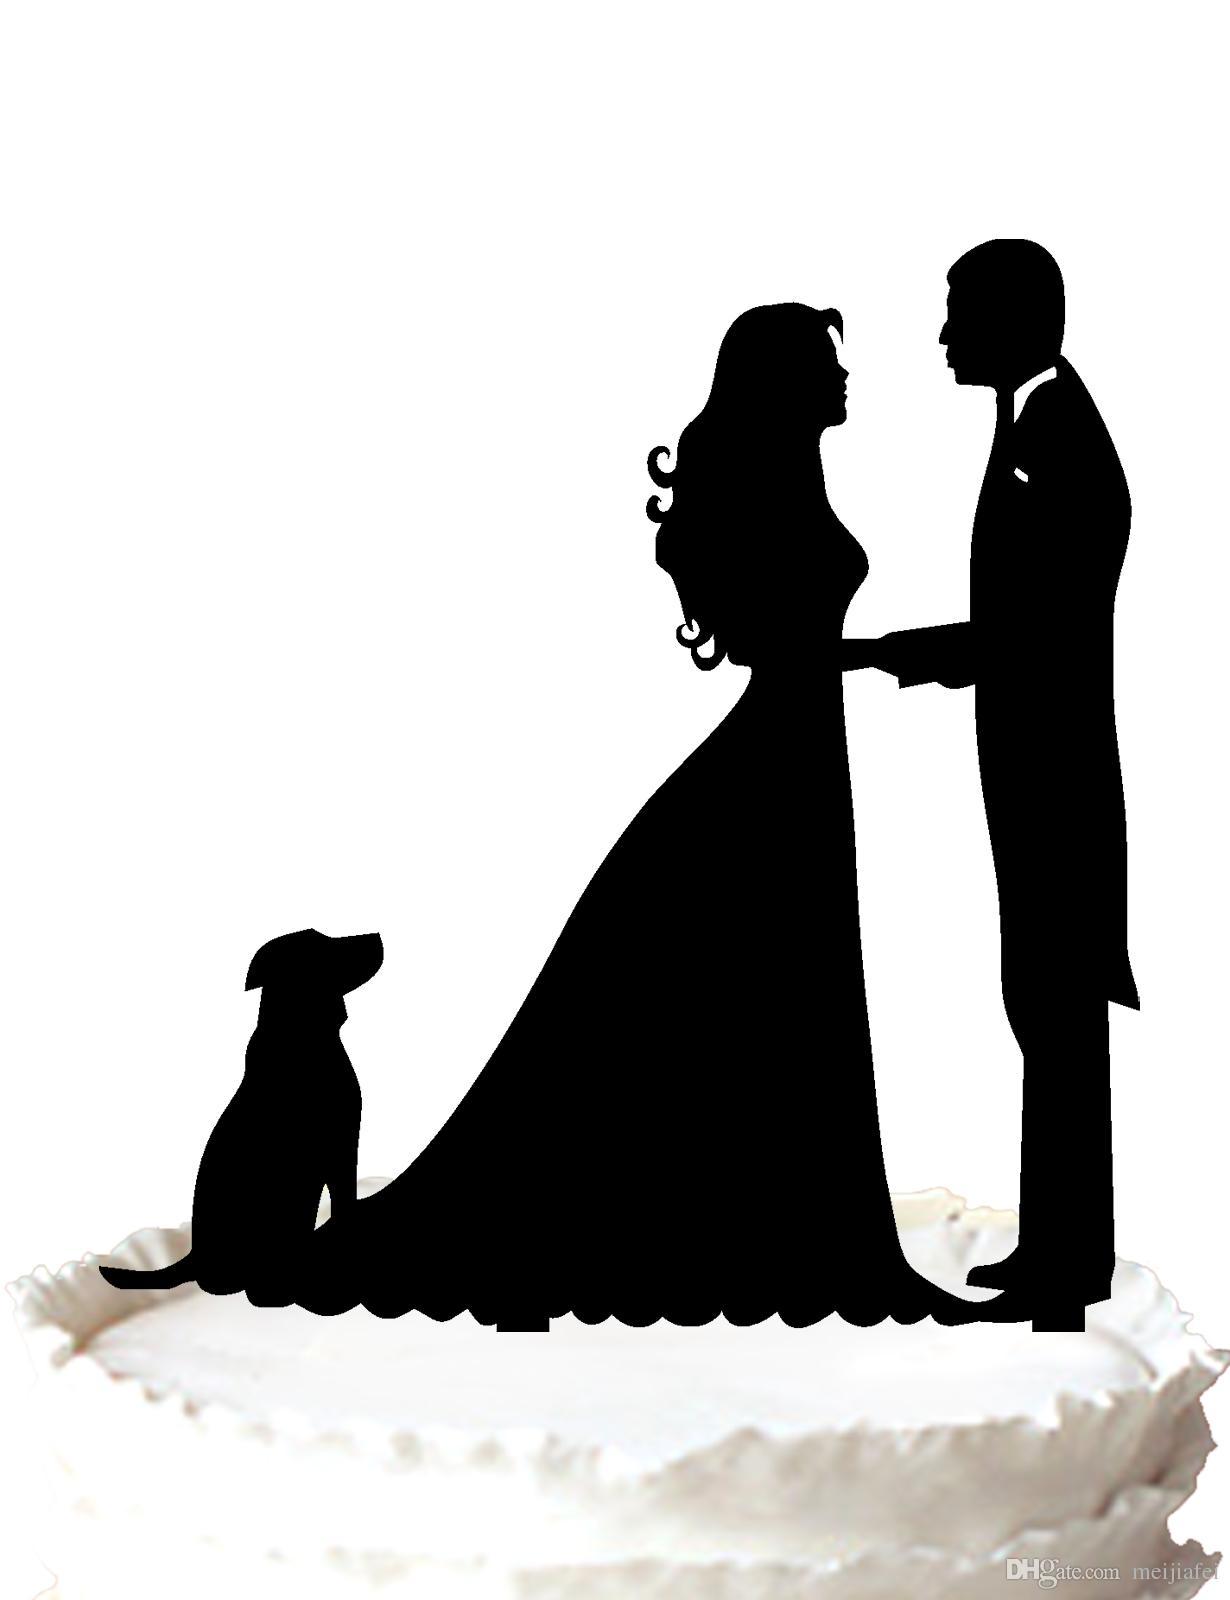 Funny Wedding Cake Topper Silouette